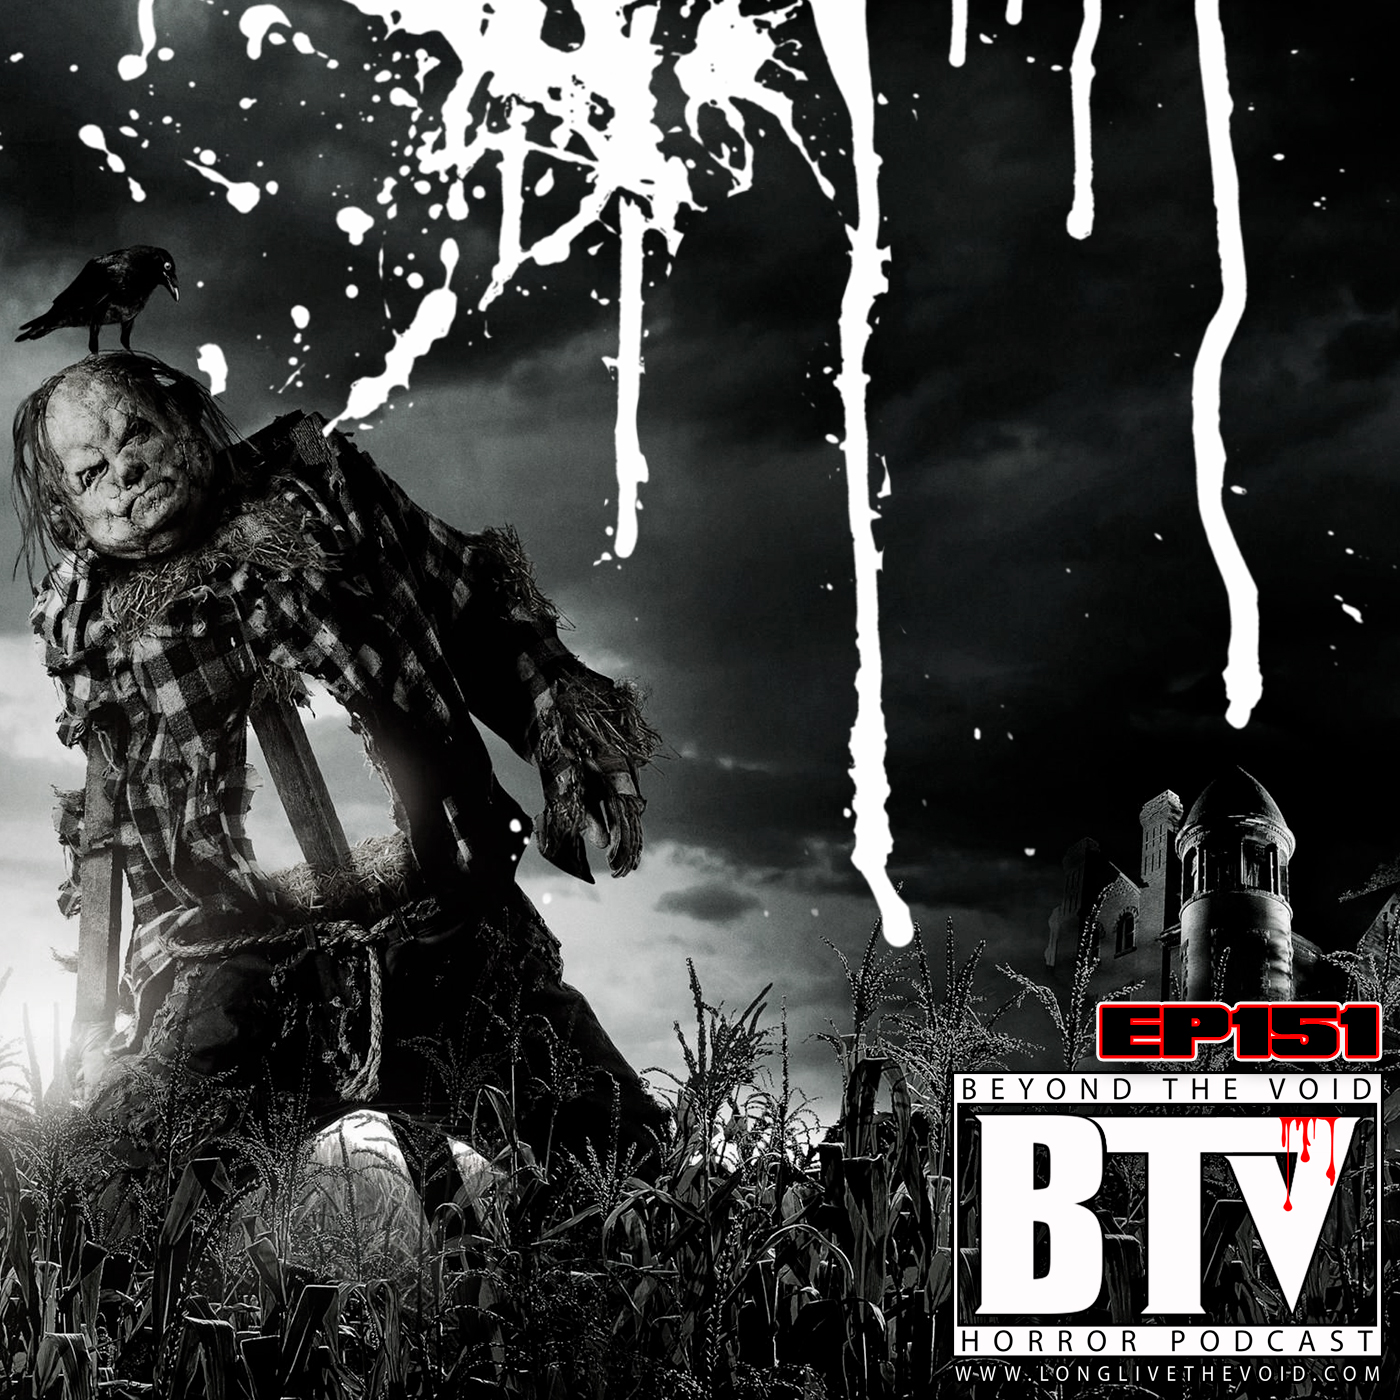 Ep151 Scary Stories To Tell In The Dark (BTV 3yr Anniversary